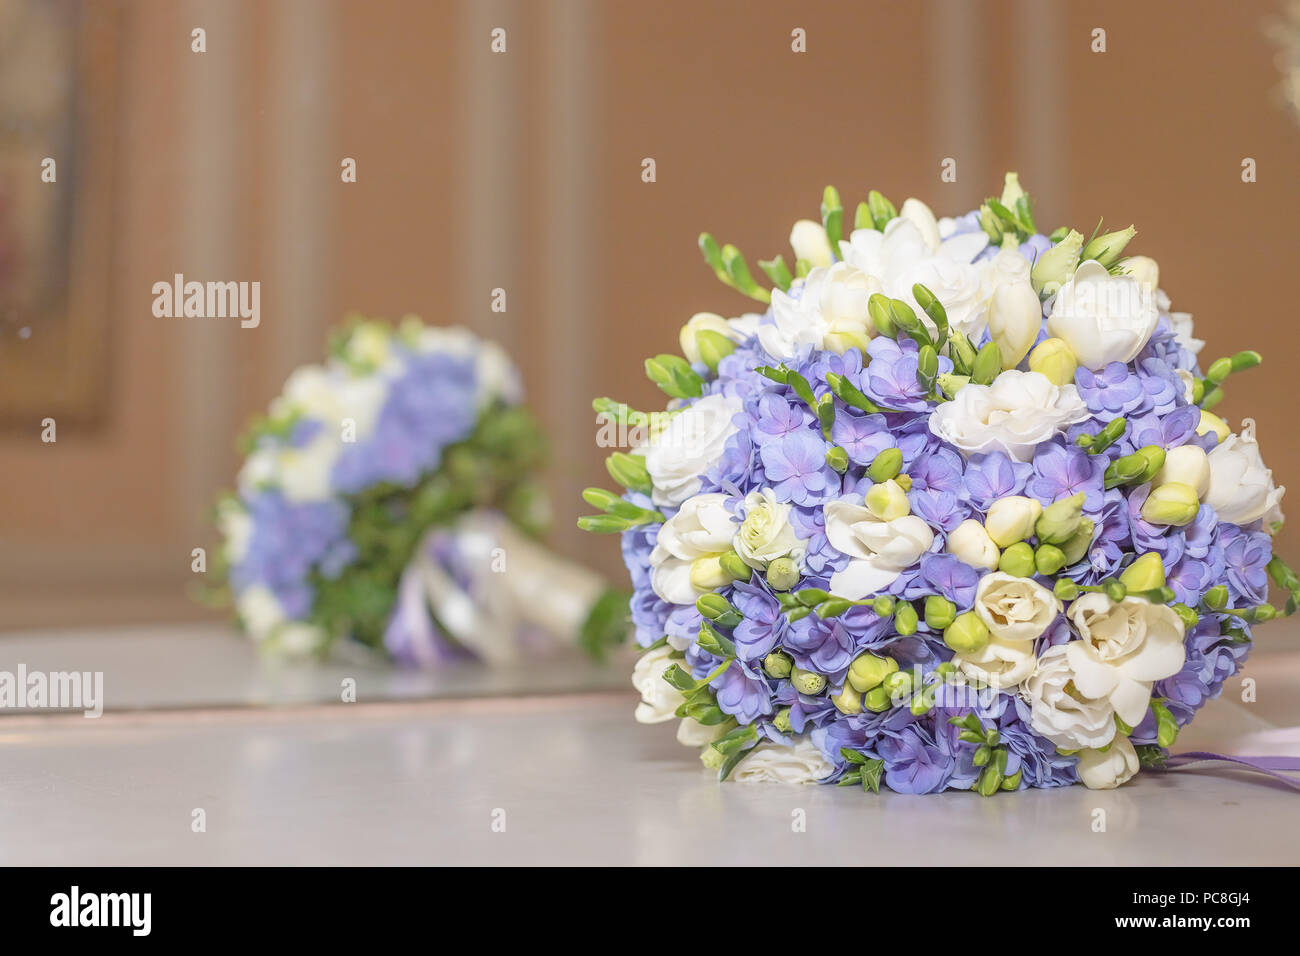 Wedding Bouquet Flowers Bridal Bouquet Beautiful White Blue Bouquet